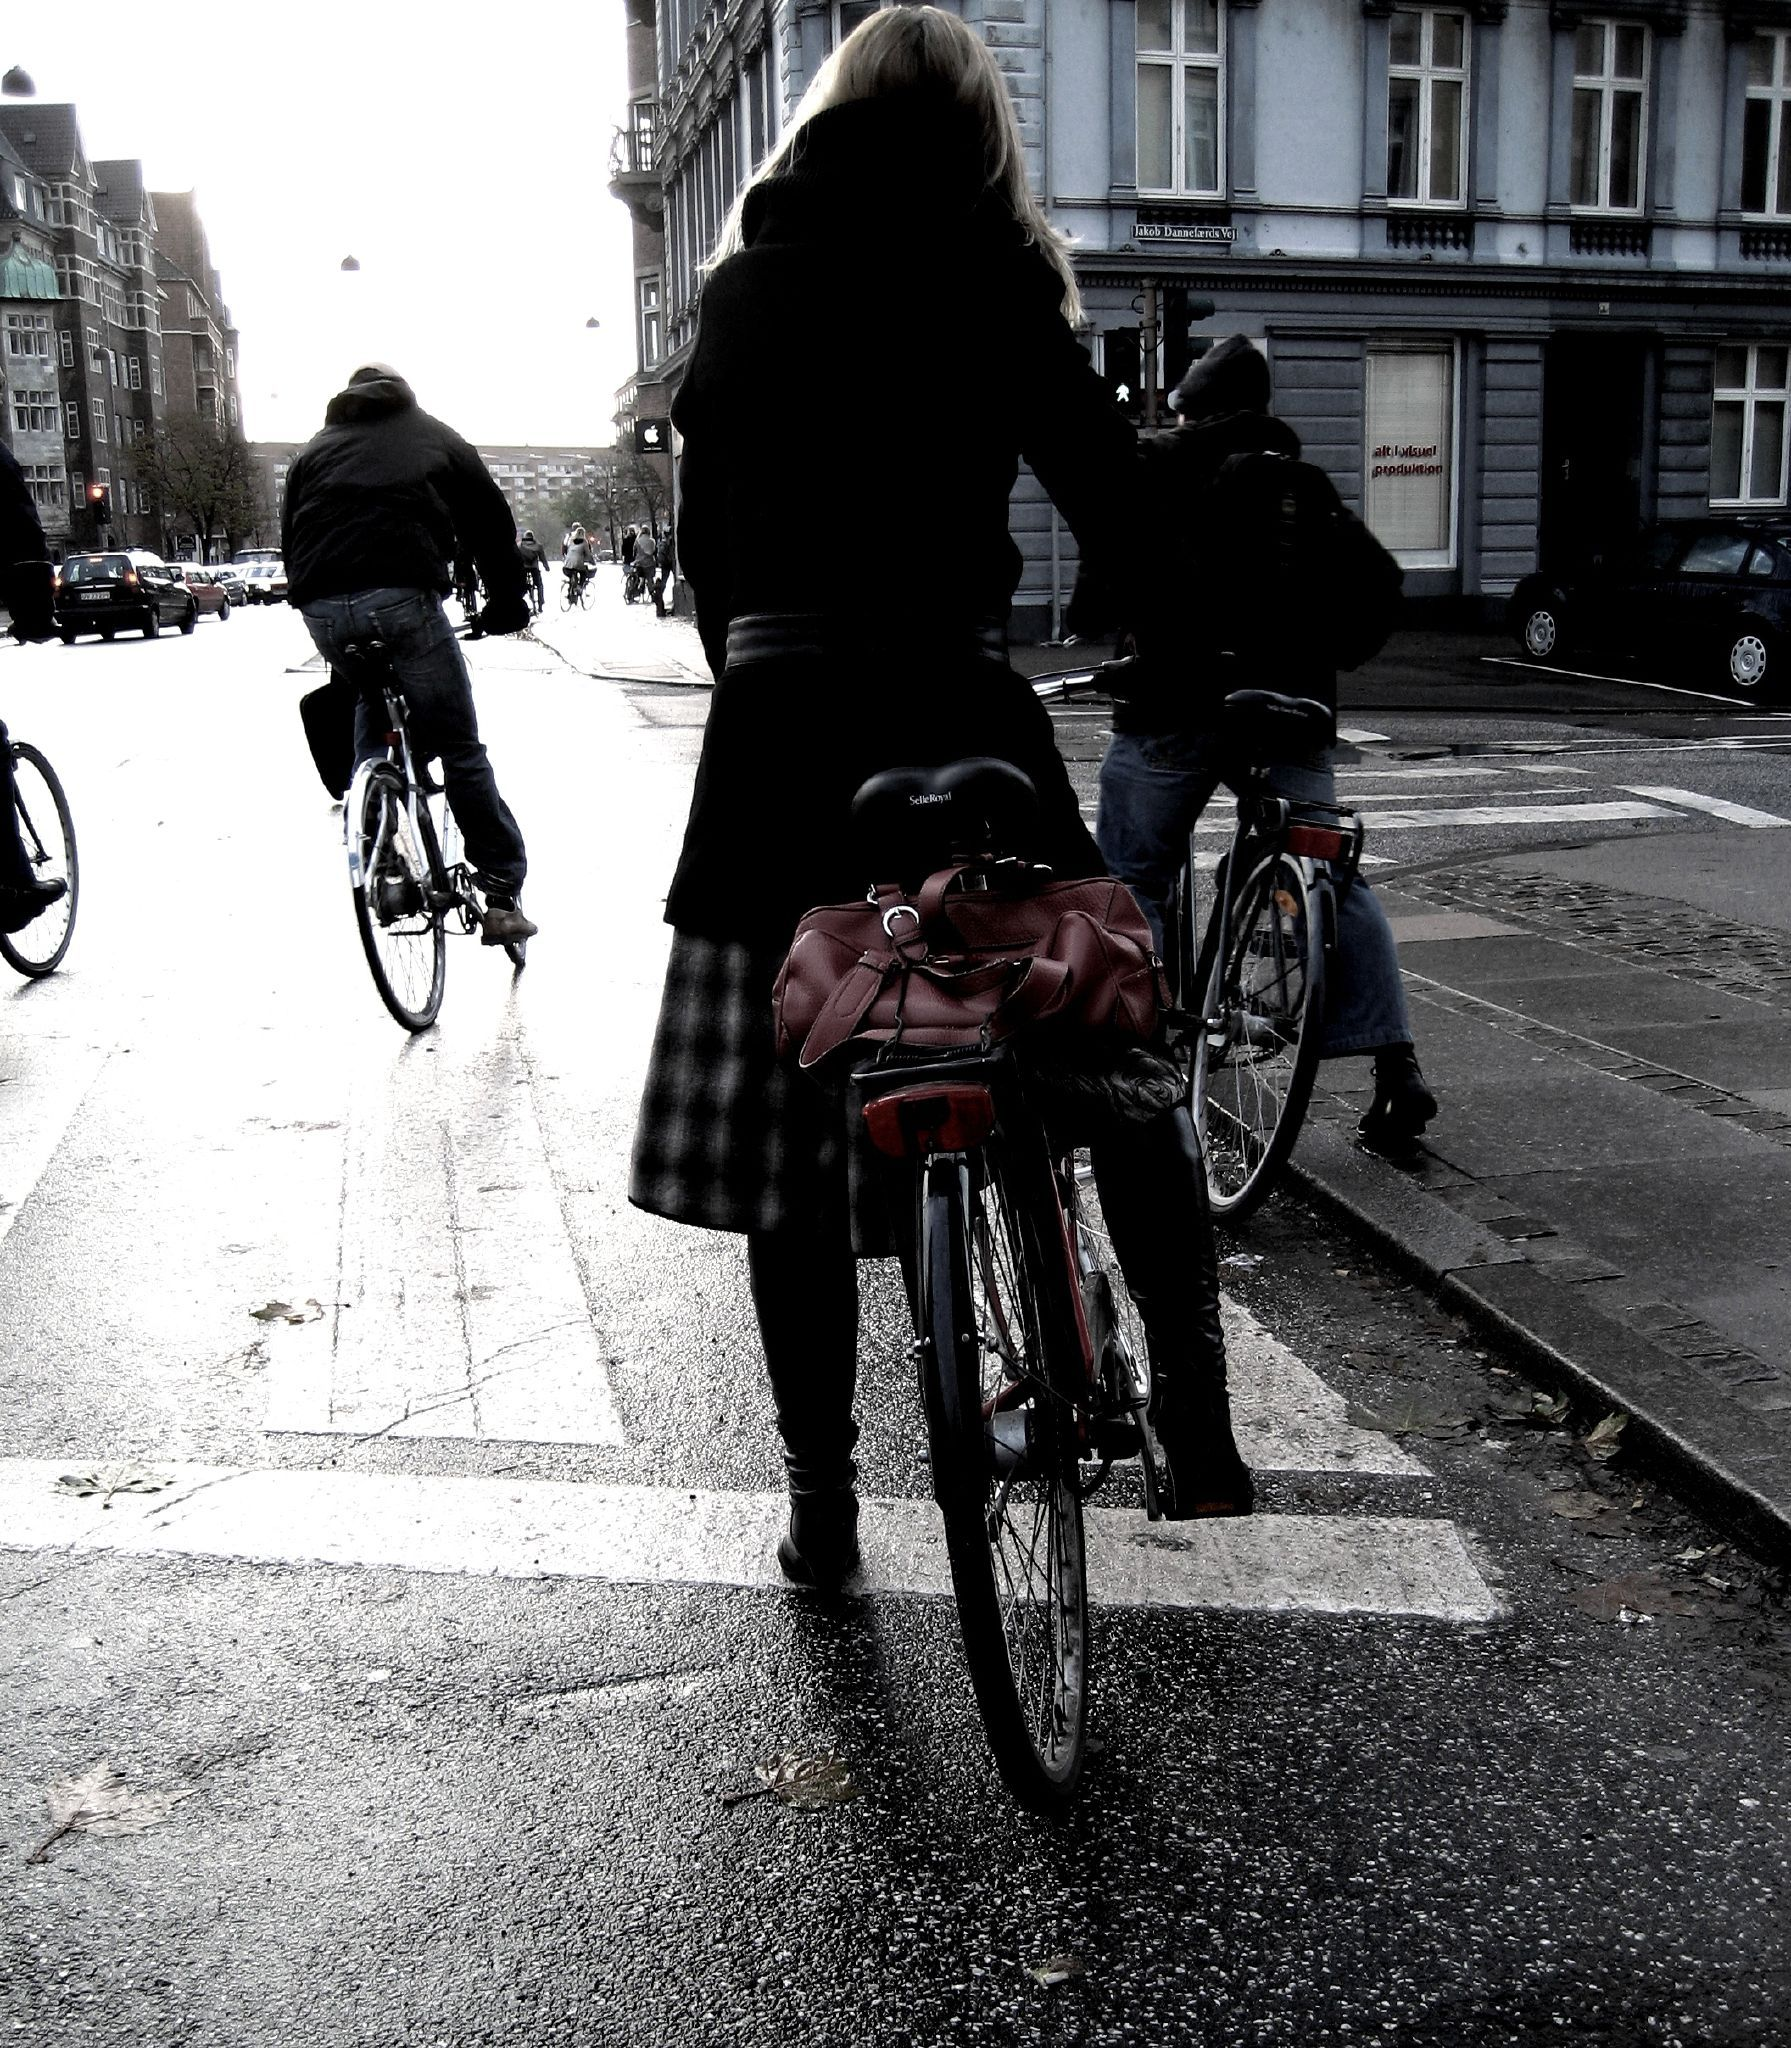 How it started in 2006 ... http://www.copenhagencyclechic.com/